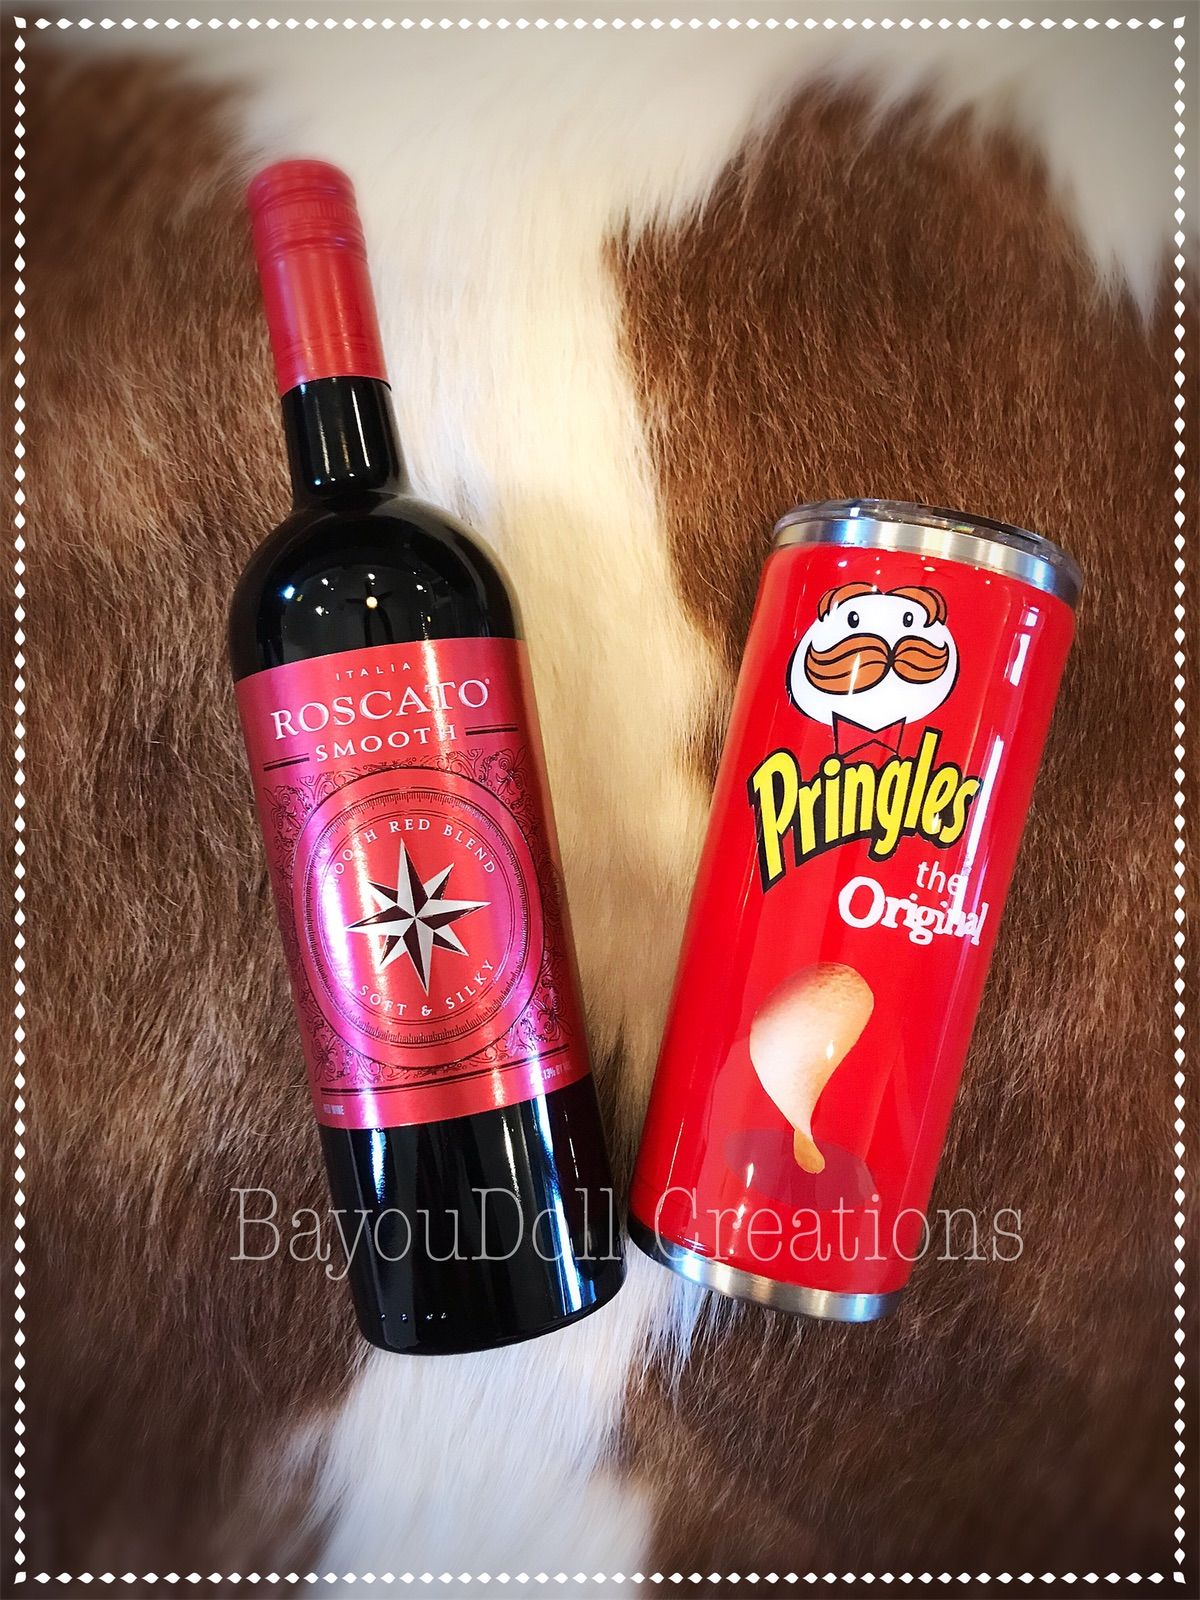 Pringle S Tumbler The Original Walmart Starter Pack Live Your Best Life Wine Cup Insulated Wine Cups Pringles Tumbler Cups